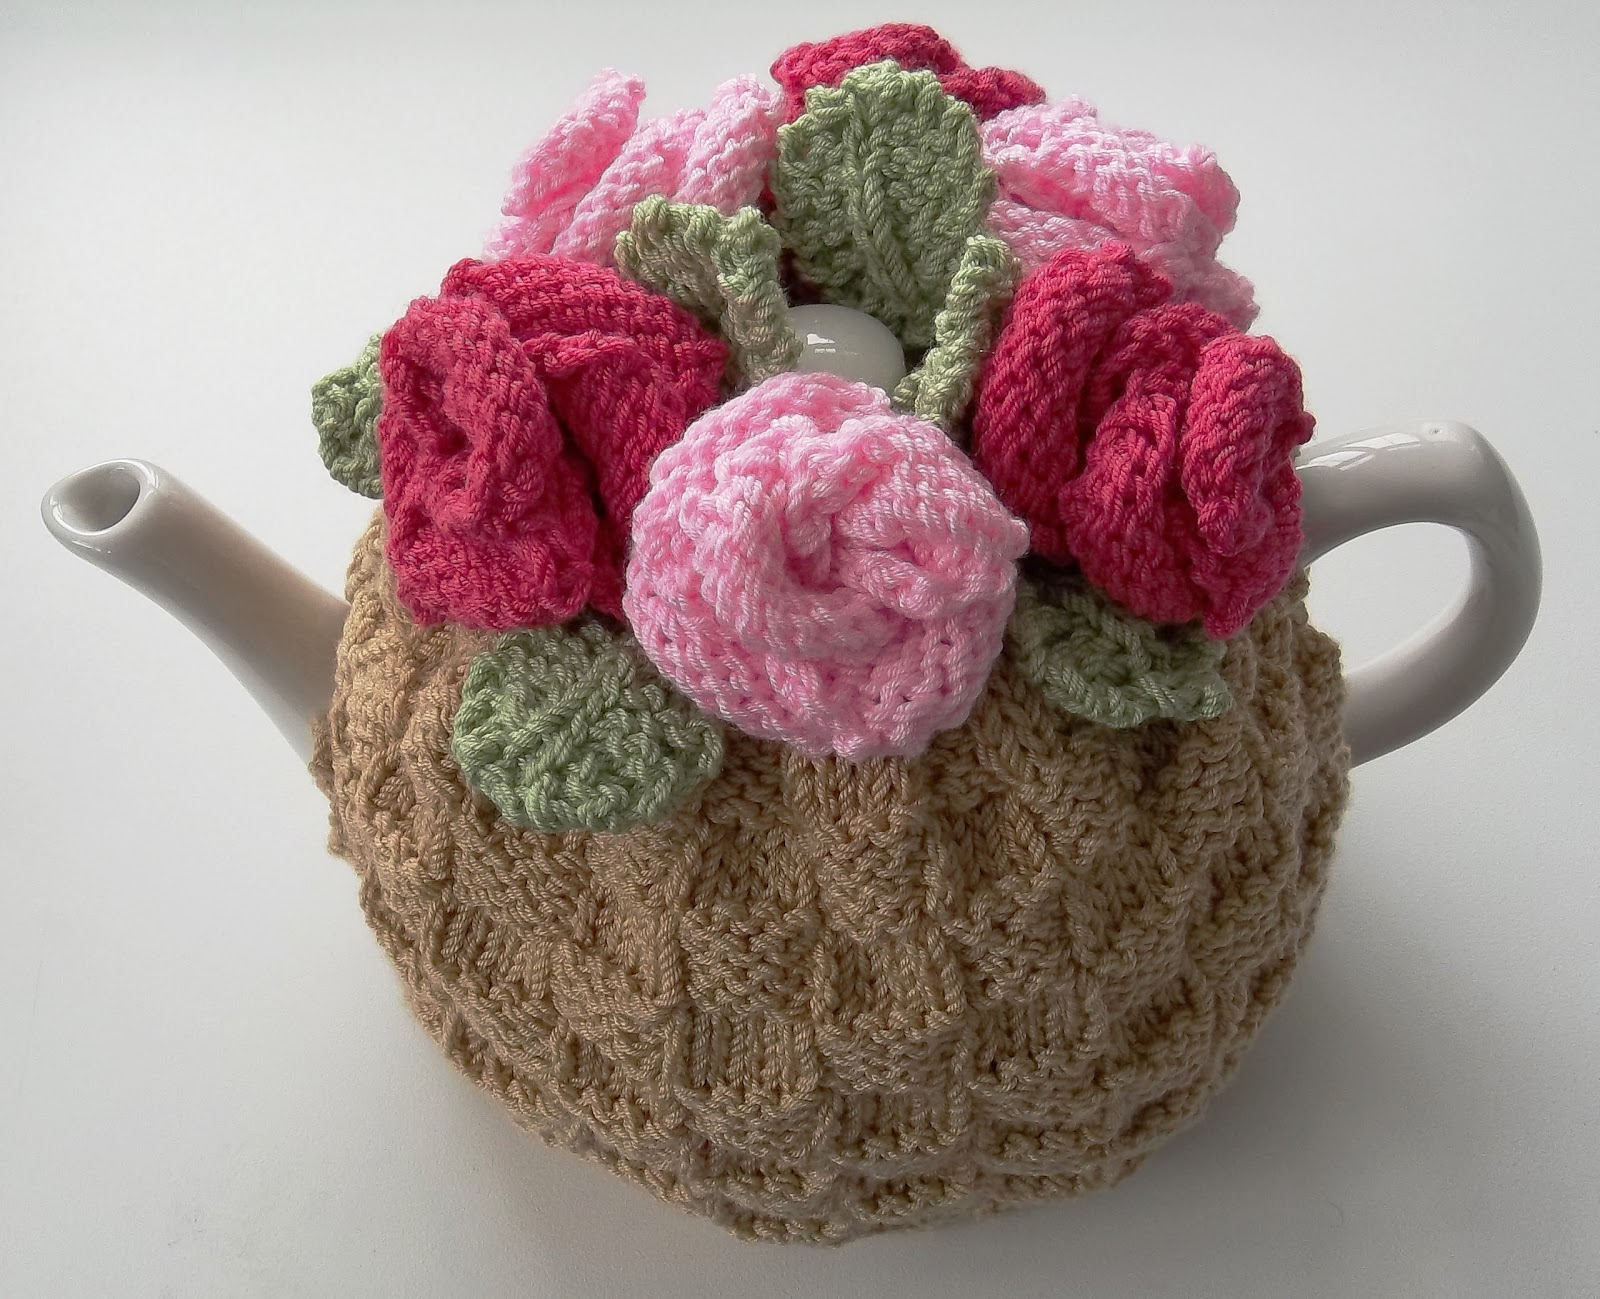 Tea Cozy Patterns To Knit The Tea Rose Tea Cosy Hand Knitting Pattern